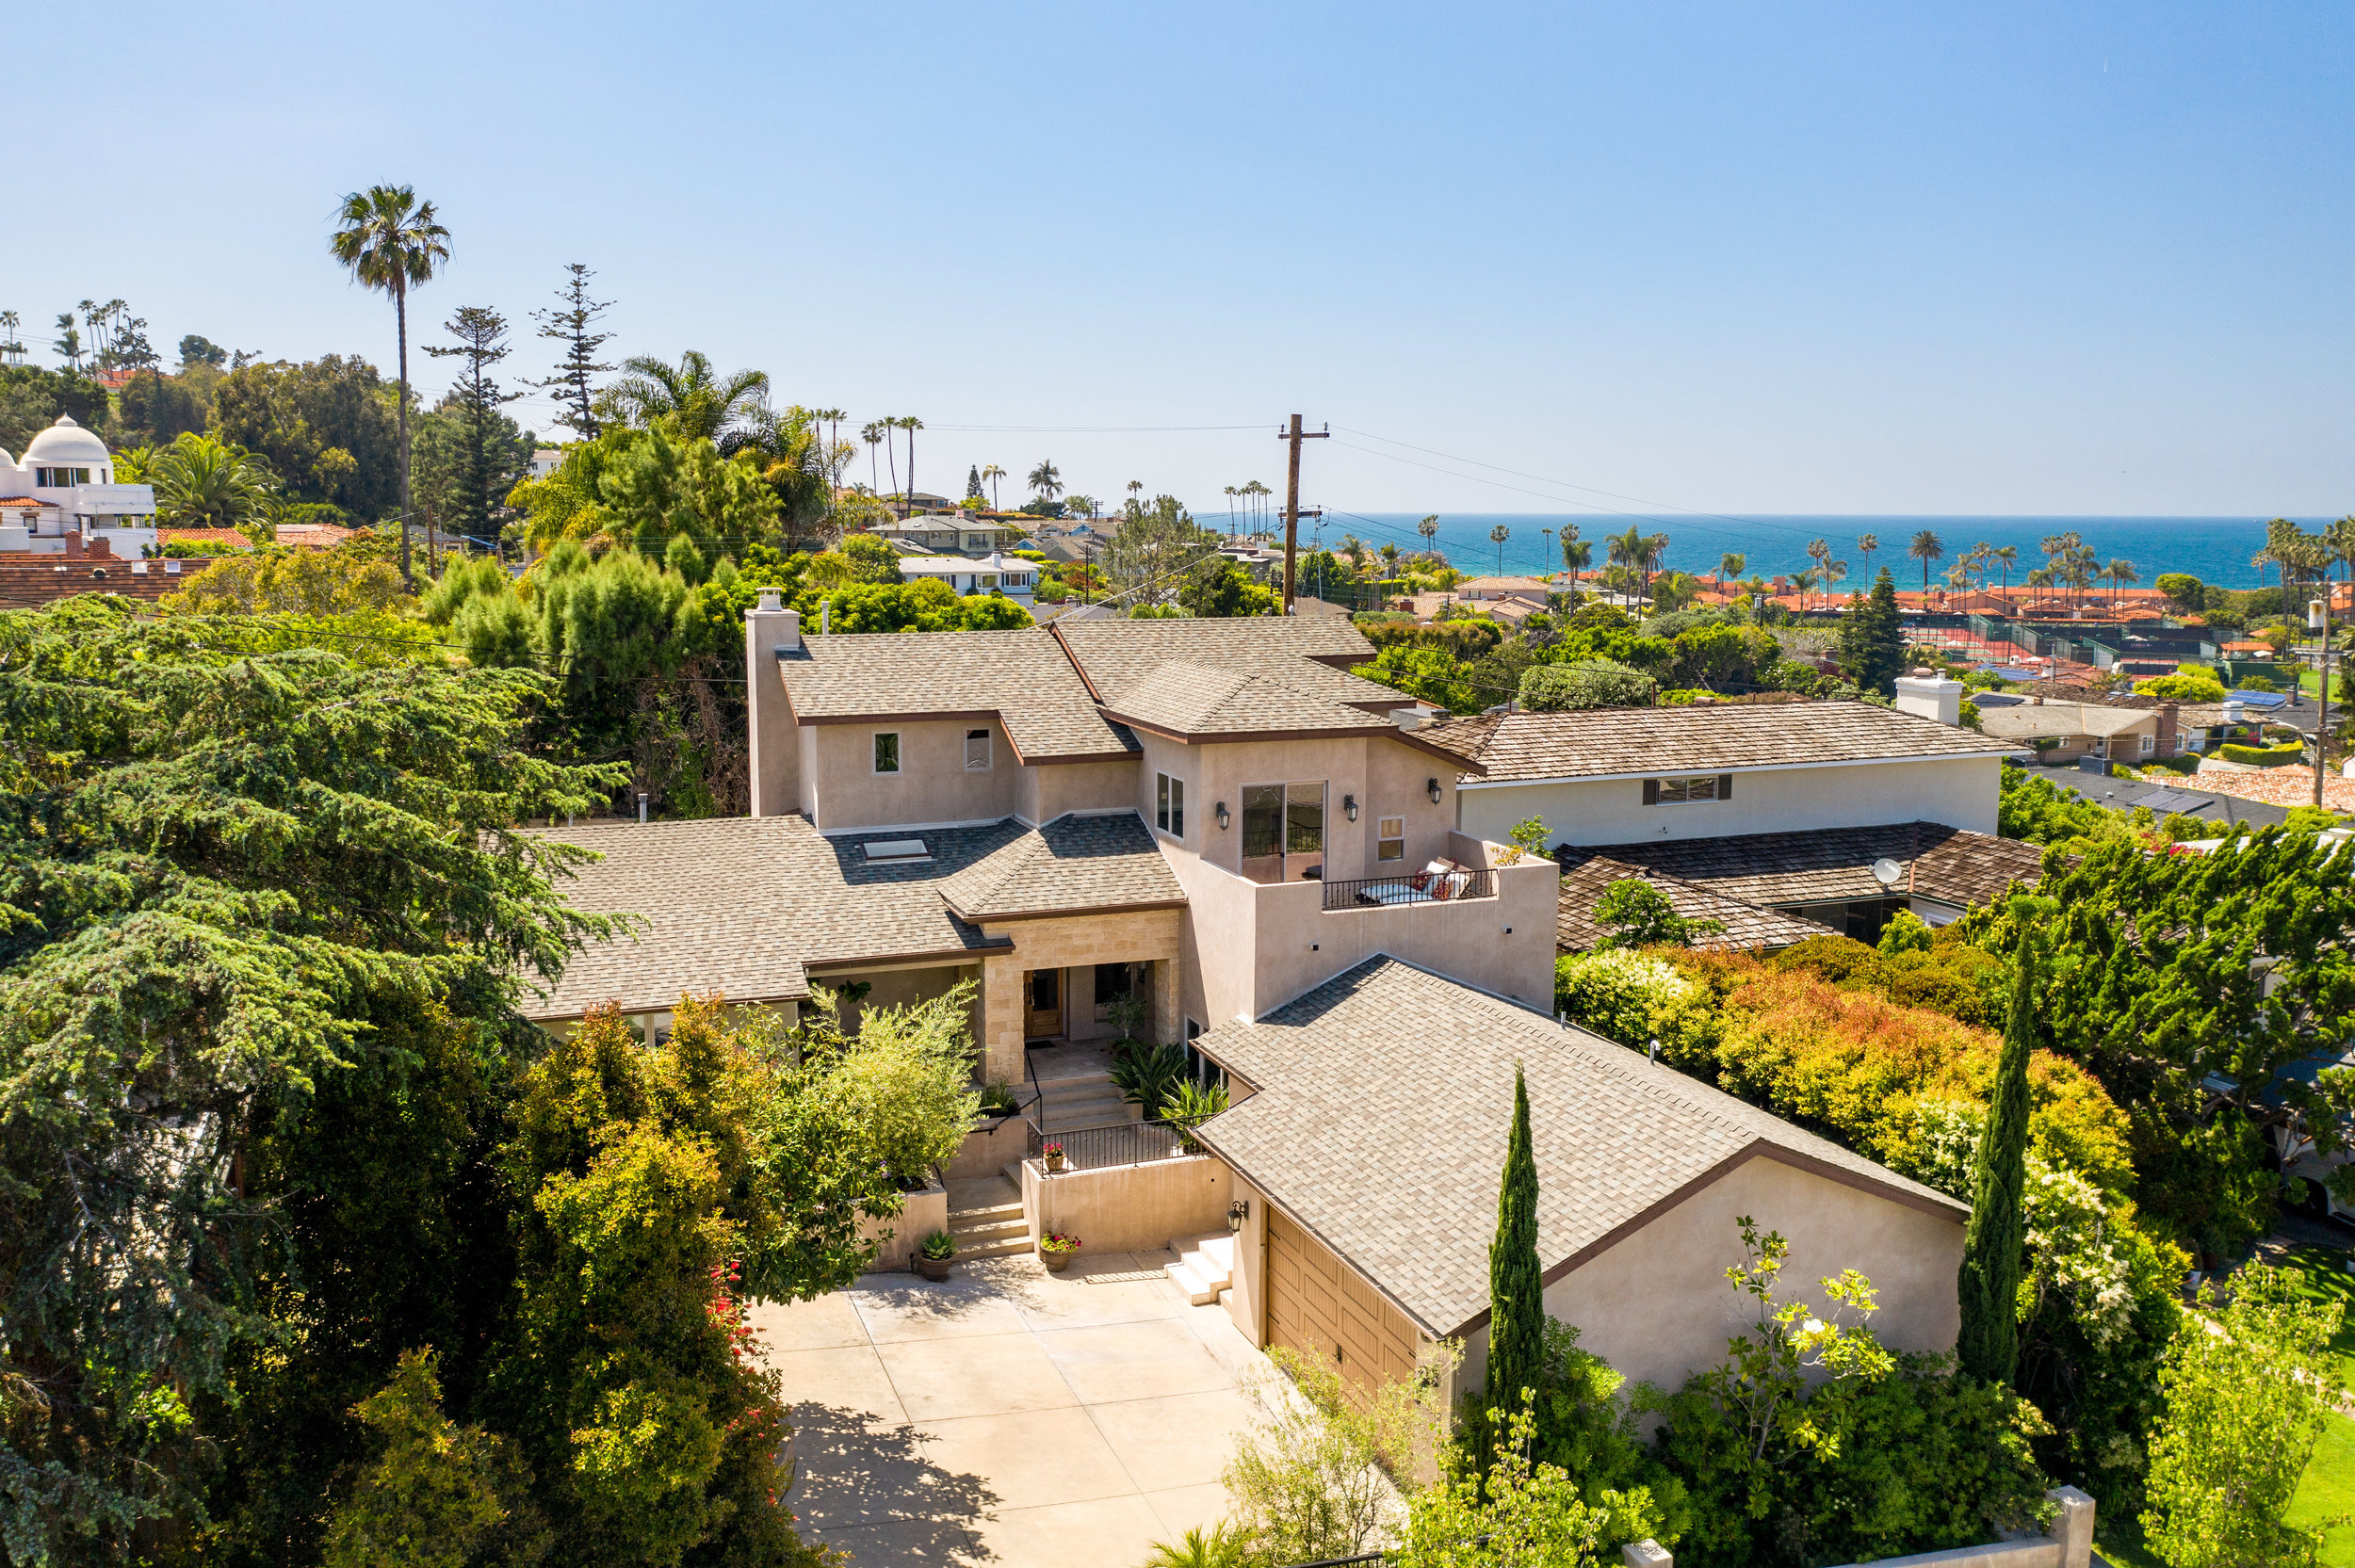 7912 Calle De La Plata - Opportunity knocks in La Jolla Shores,Listed $651K below US Bank appraisal (paperwork upon request).$910 price per SqFt (Home next door sold for over $1,113 price per SqFt)Ocean view Mediterranean estateCompletely remodeled in 2010Kitchen updated in 2018Situated in one of the most desirable addresses in La Jolla Shores. The estate boasts 4 tastefully designed bedrooms, an office and 4 full bathrooms. Design details include high ceilings, wrought iron, floor to ceiling windows, travertine and hardwood floors. The large master suite includes two walk in closets with an air tub. Ocean, sunset and beach club views, this turn-key home, two blocks from the beach, shops and restaurants is an opportunity that rarely comes along.